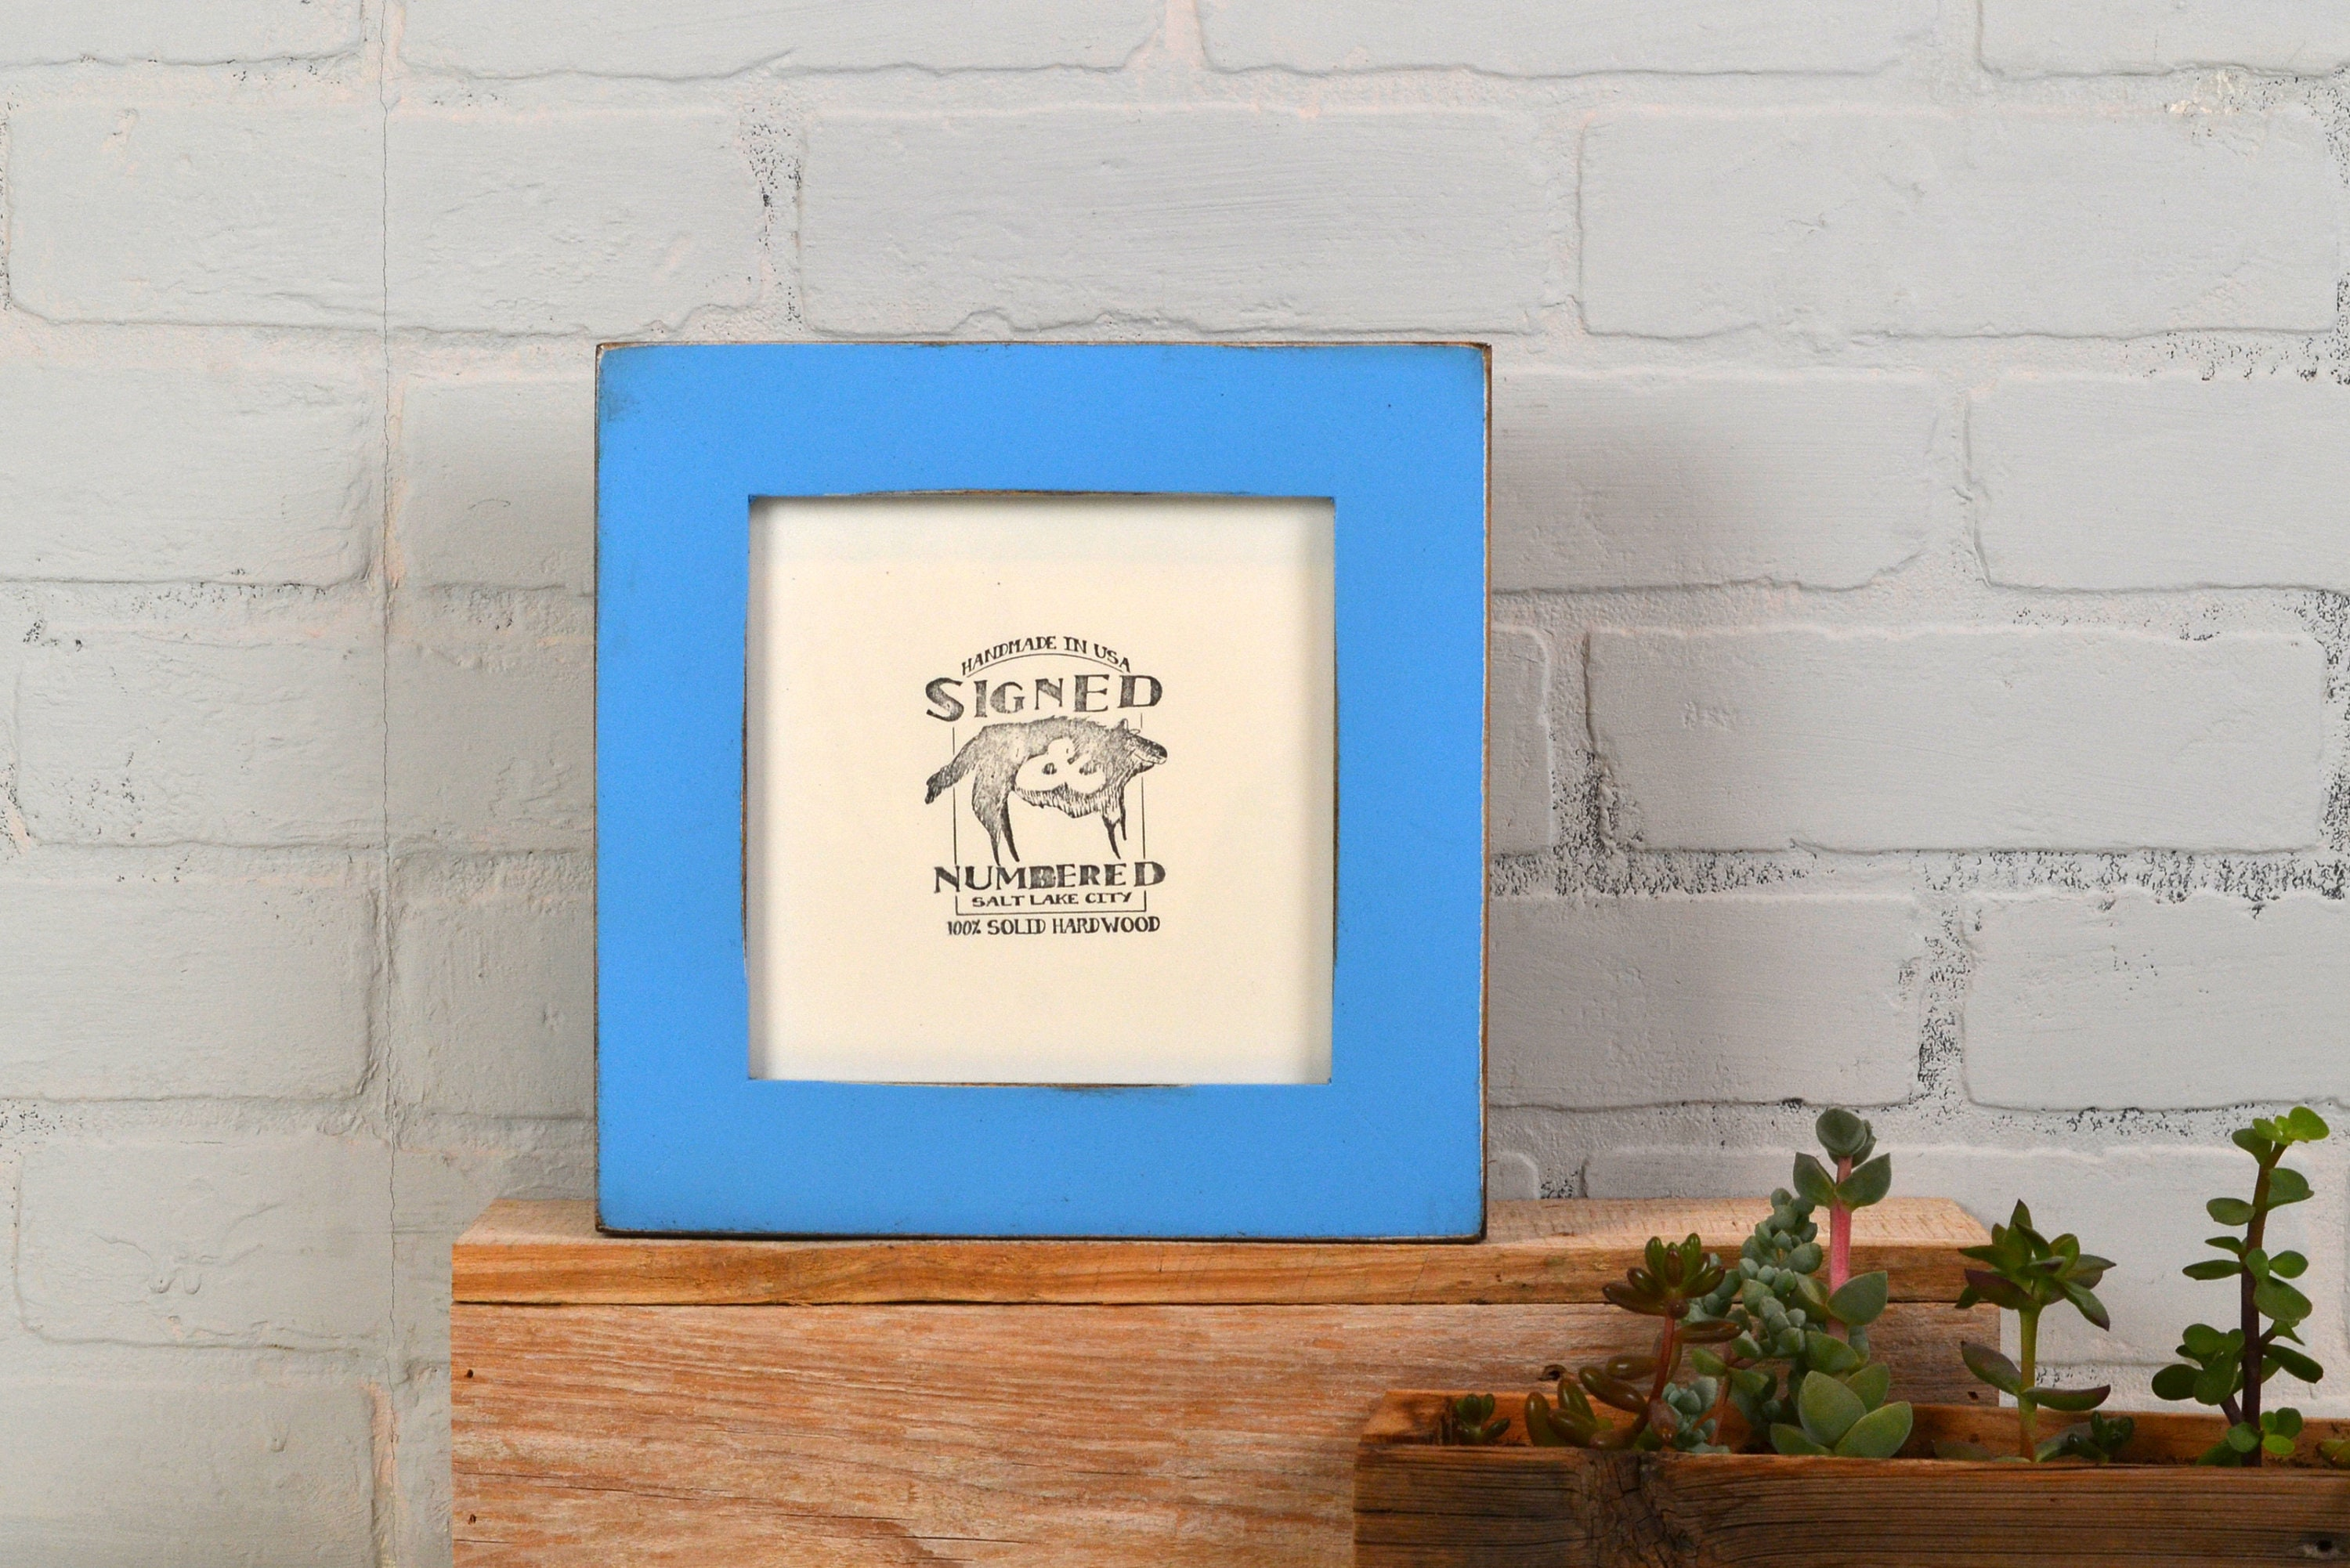 6x6 Square Frame in 1.5 inch standard style with Vintage Blue Finish ...